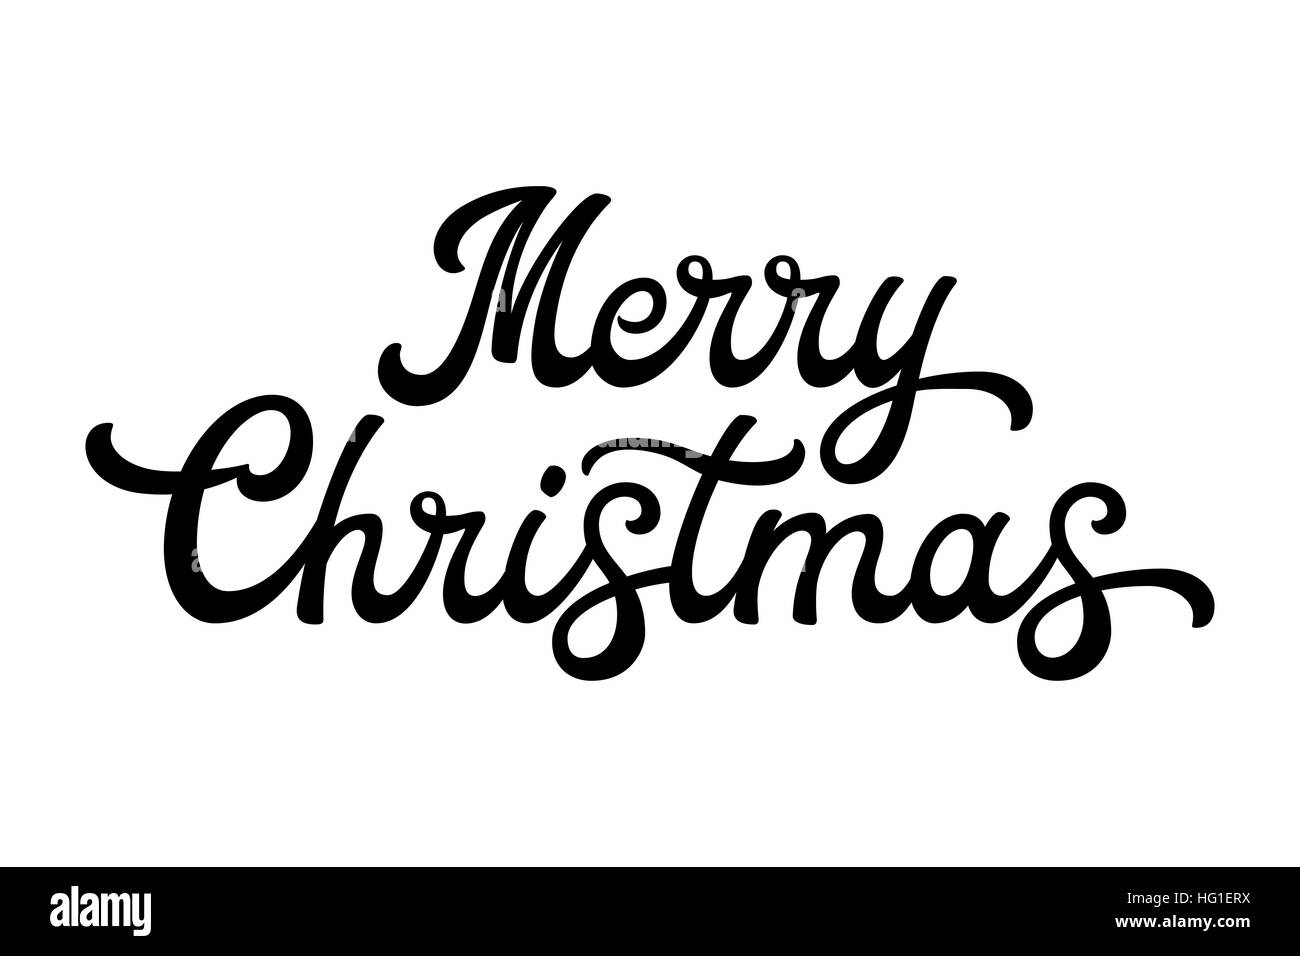 Merry Christmas Images Black And White.Merry Christmas Brush Lettering Black Letters Isolated On